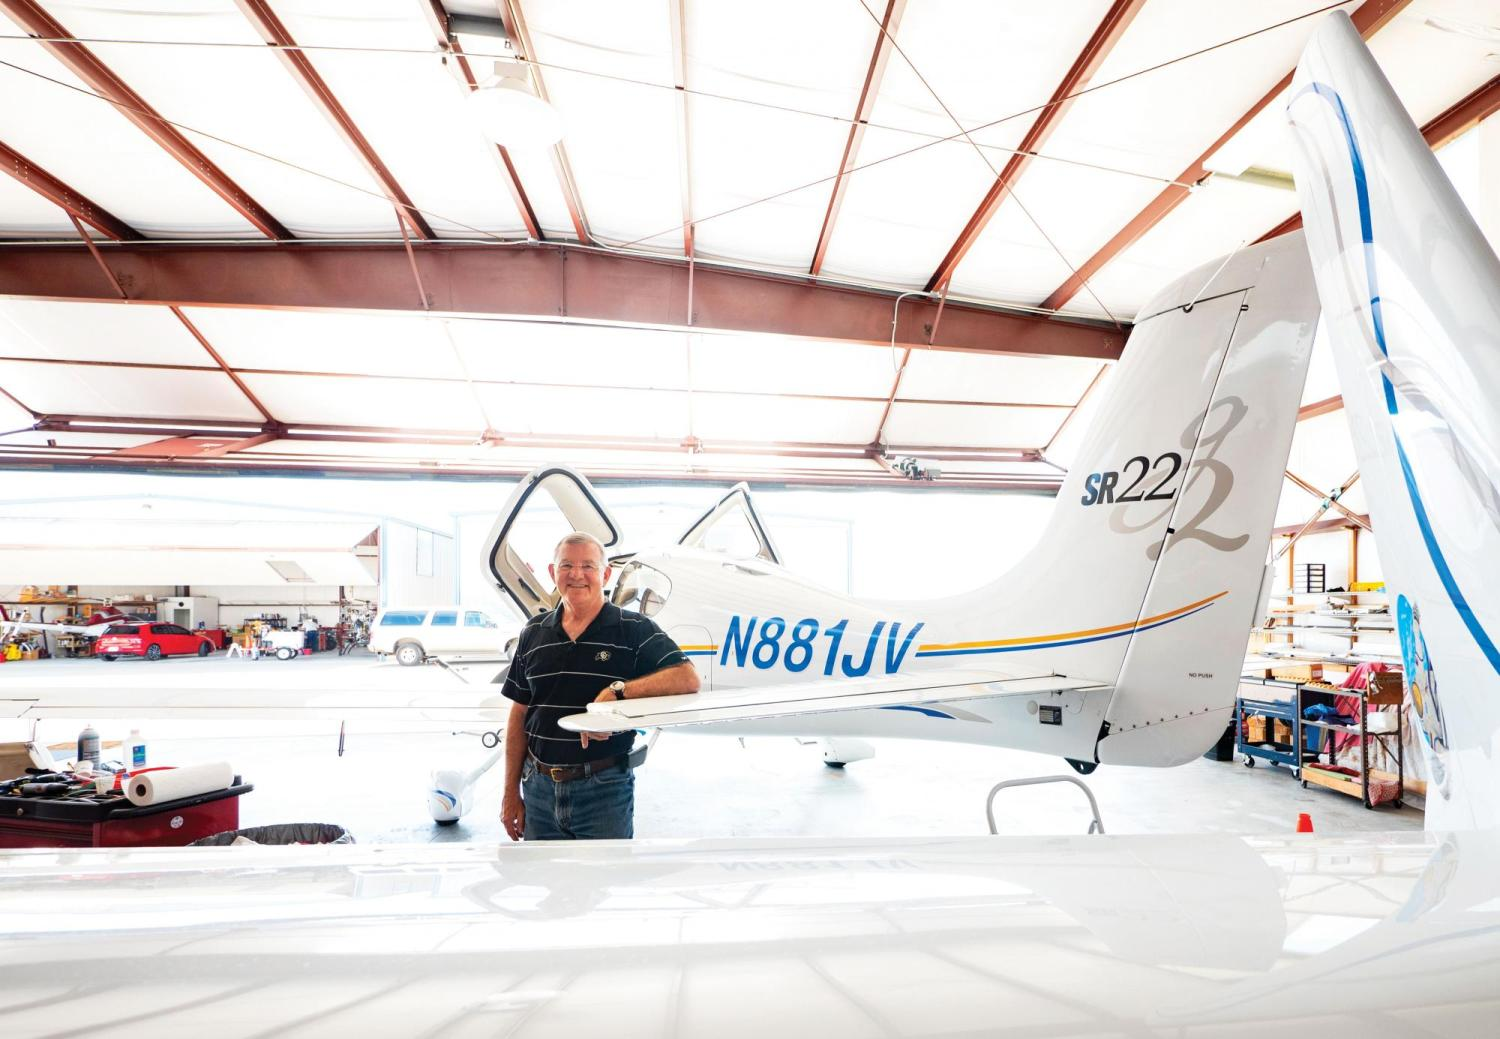 Jim Voss in front of his Airplane